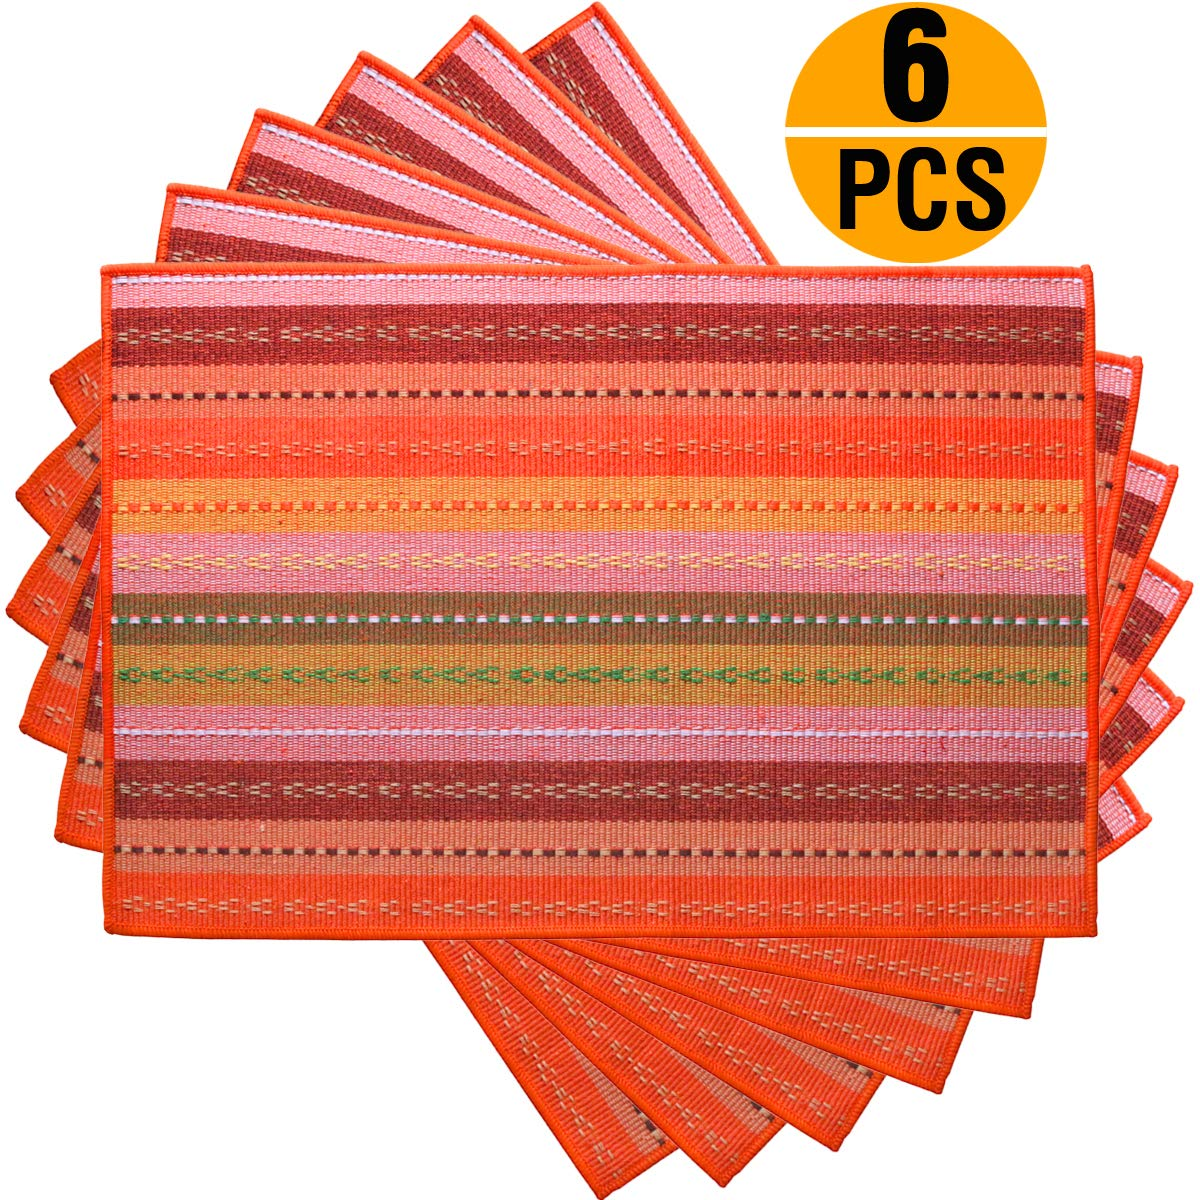 Tea Talent Everyday Kitchen Basic Cotton Placemats Woven Braided Ribbed Washable Dining Table Mats for Dinner Parties Picnics, 18'' x 12'', Set of 6 - Orange